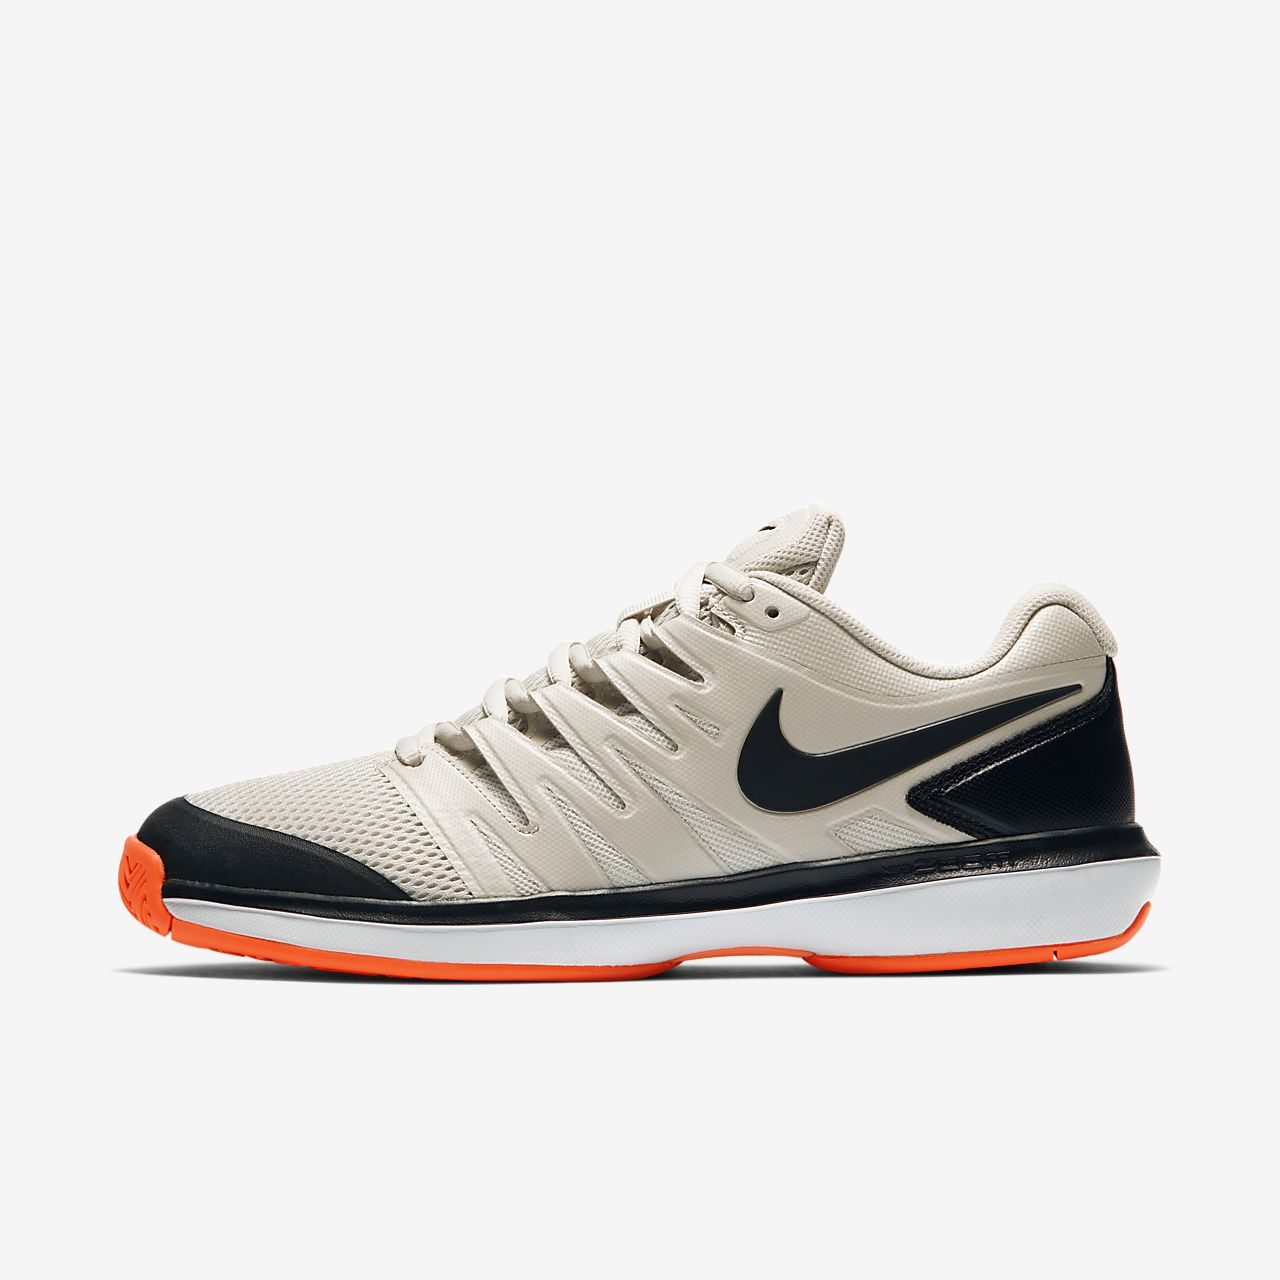 Tennissko NikeCourt Air Zoom Prestige Hard Court för män